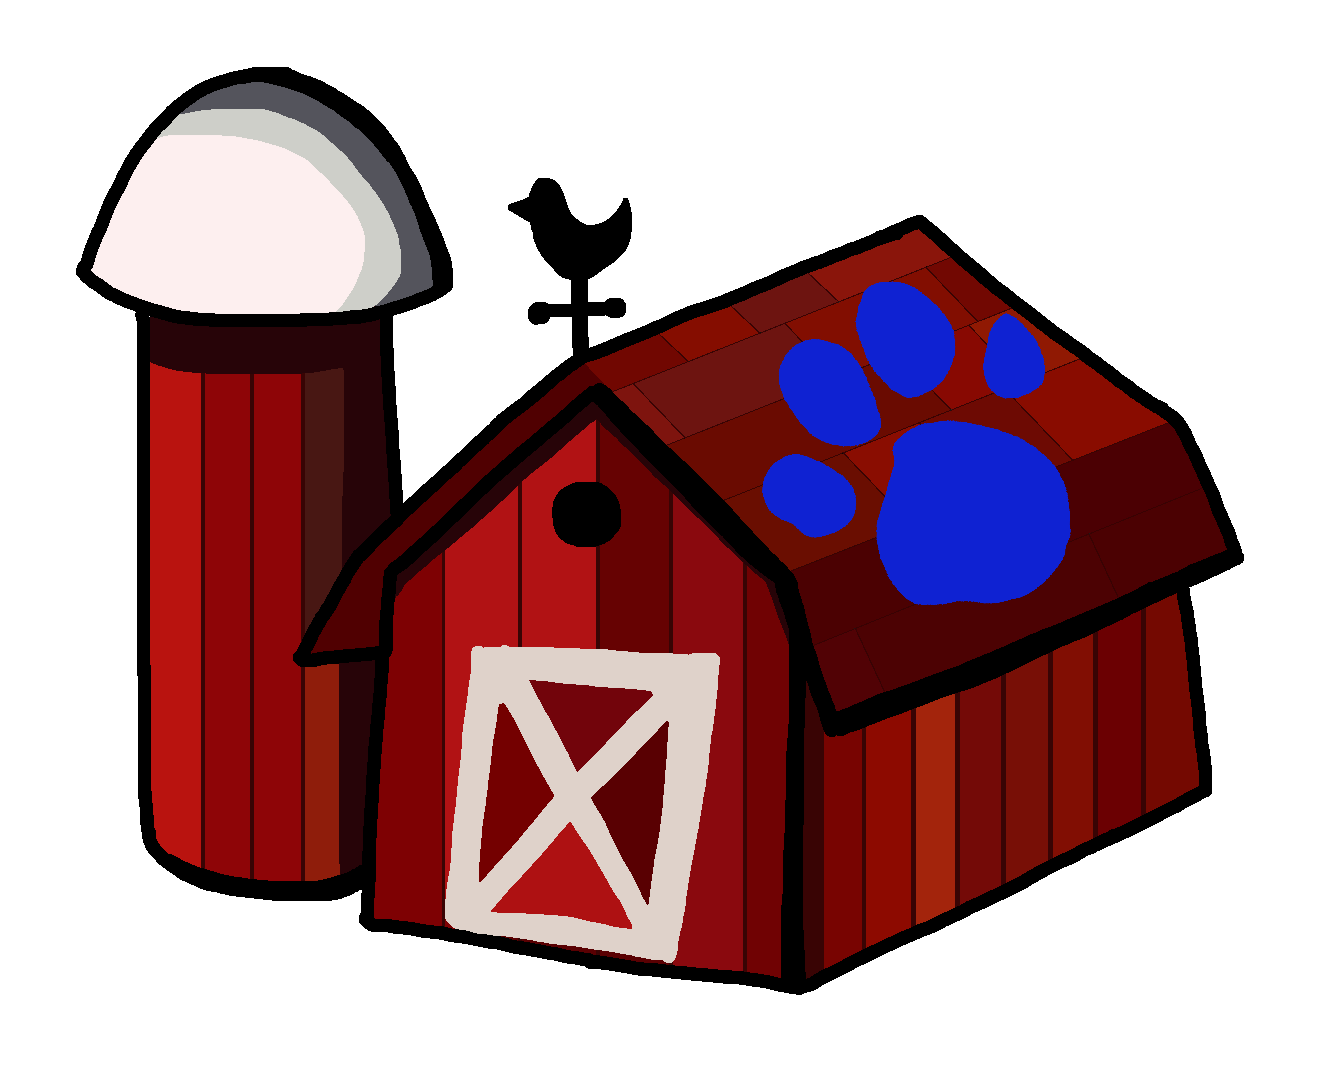 Blues Clues Barn With A Paw Print By Casey265314 On Deviantart The image is png format and has been processed into transparent background by ps tool. blues clues barn with a paw print by